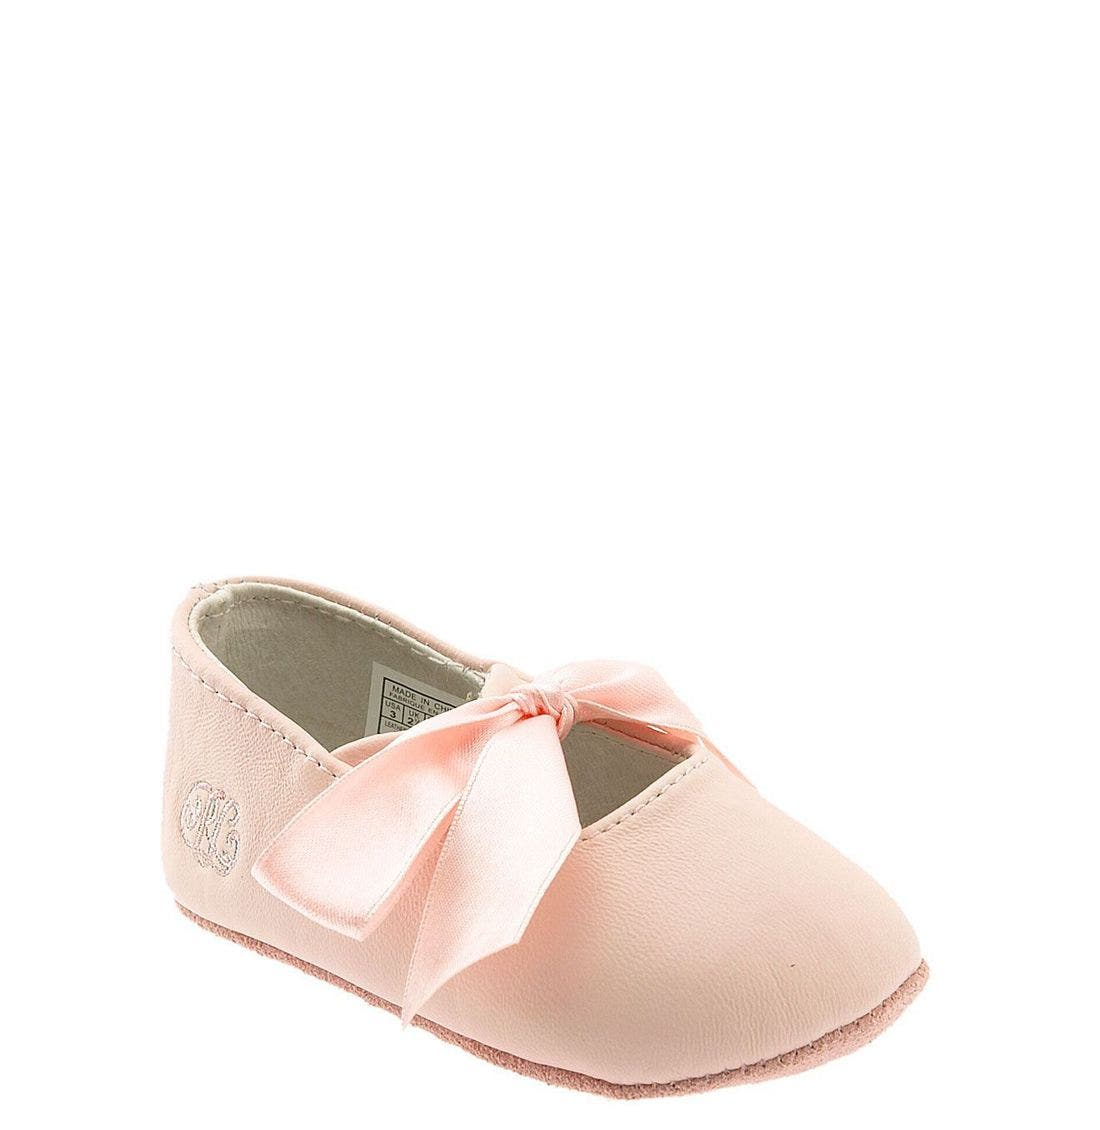 Layette 'Briley' Shoe,                         Main,                         color, Pink Lambskin